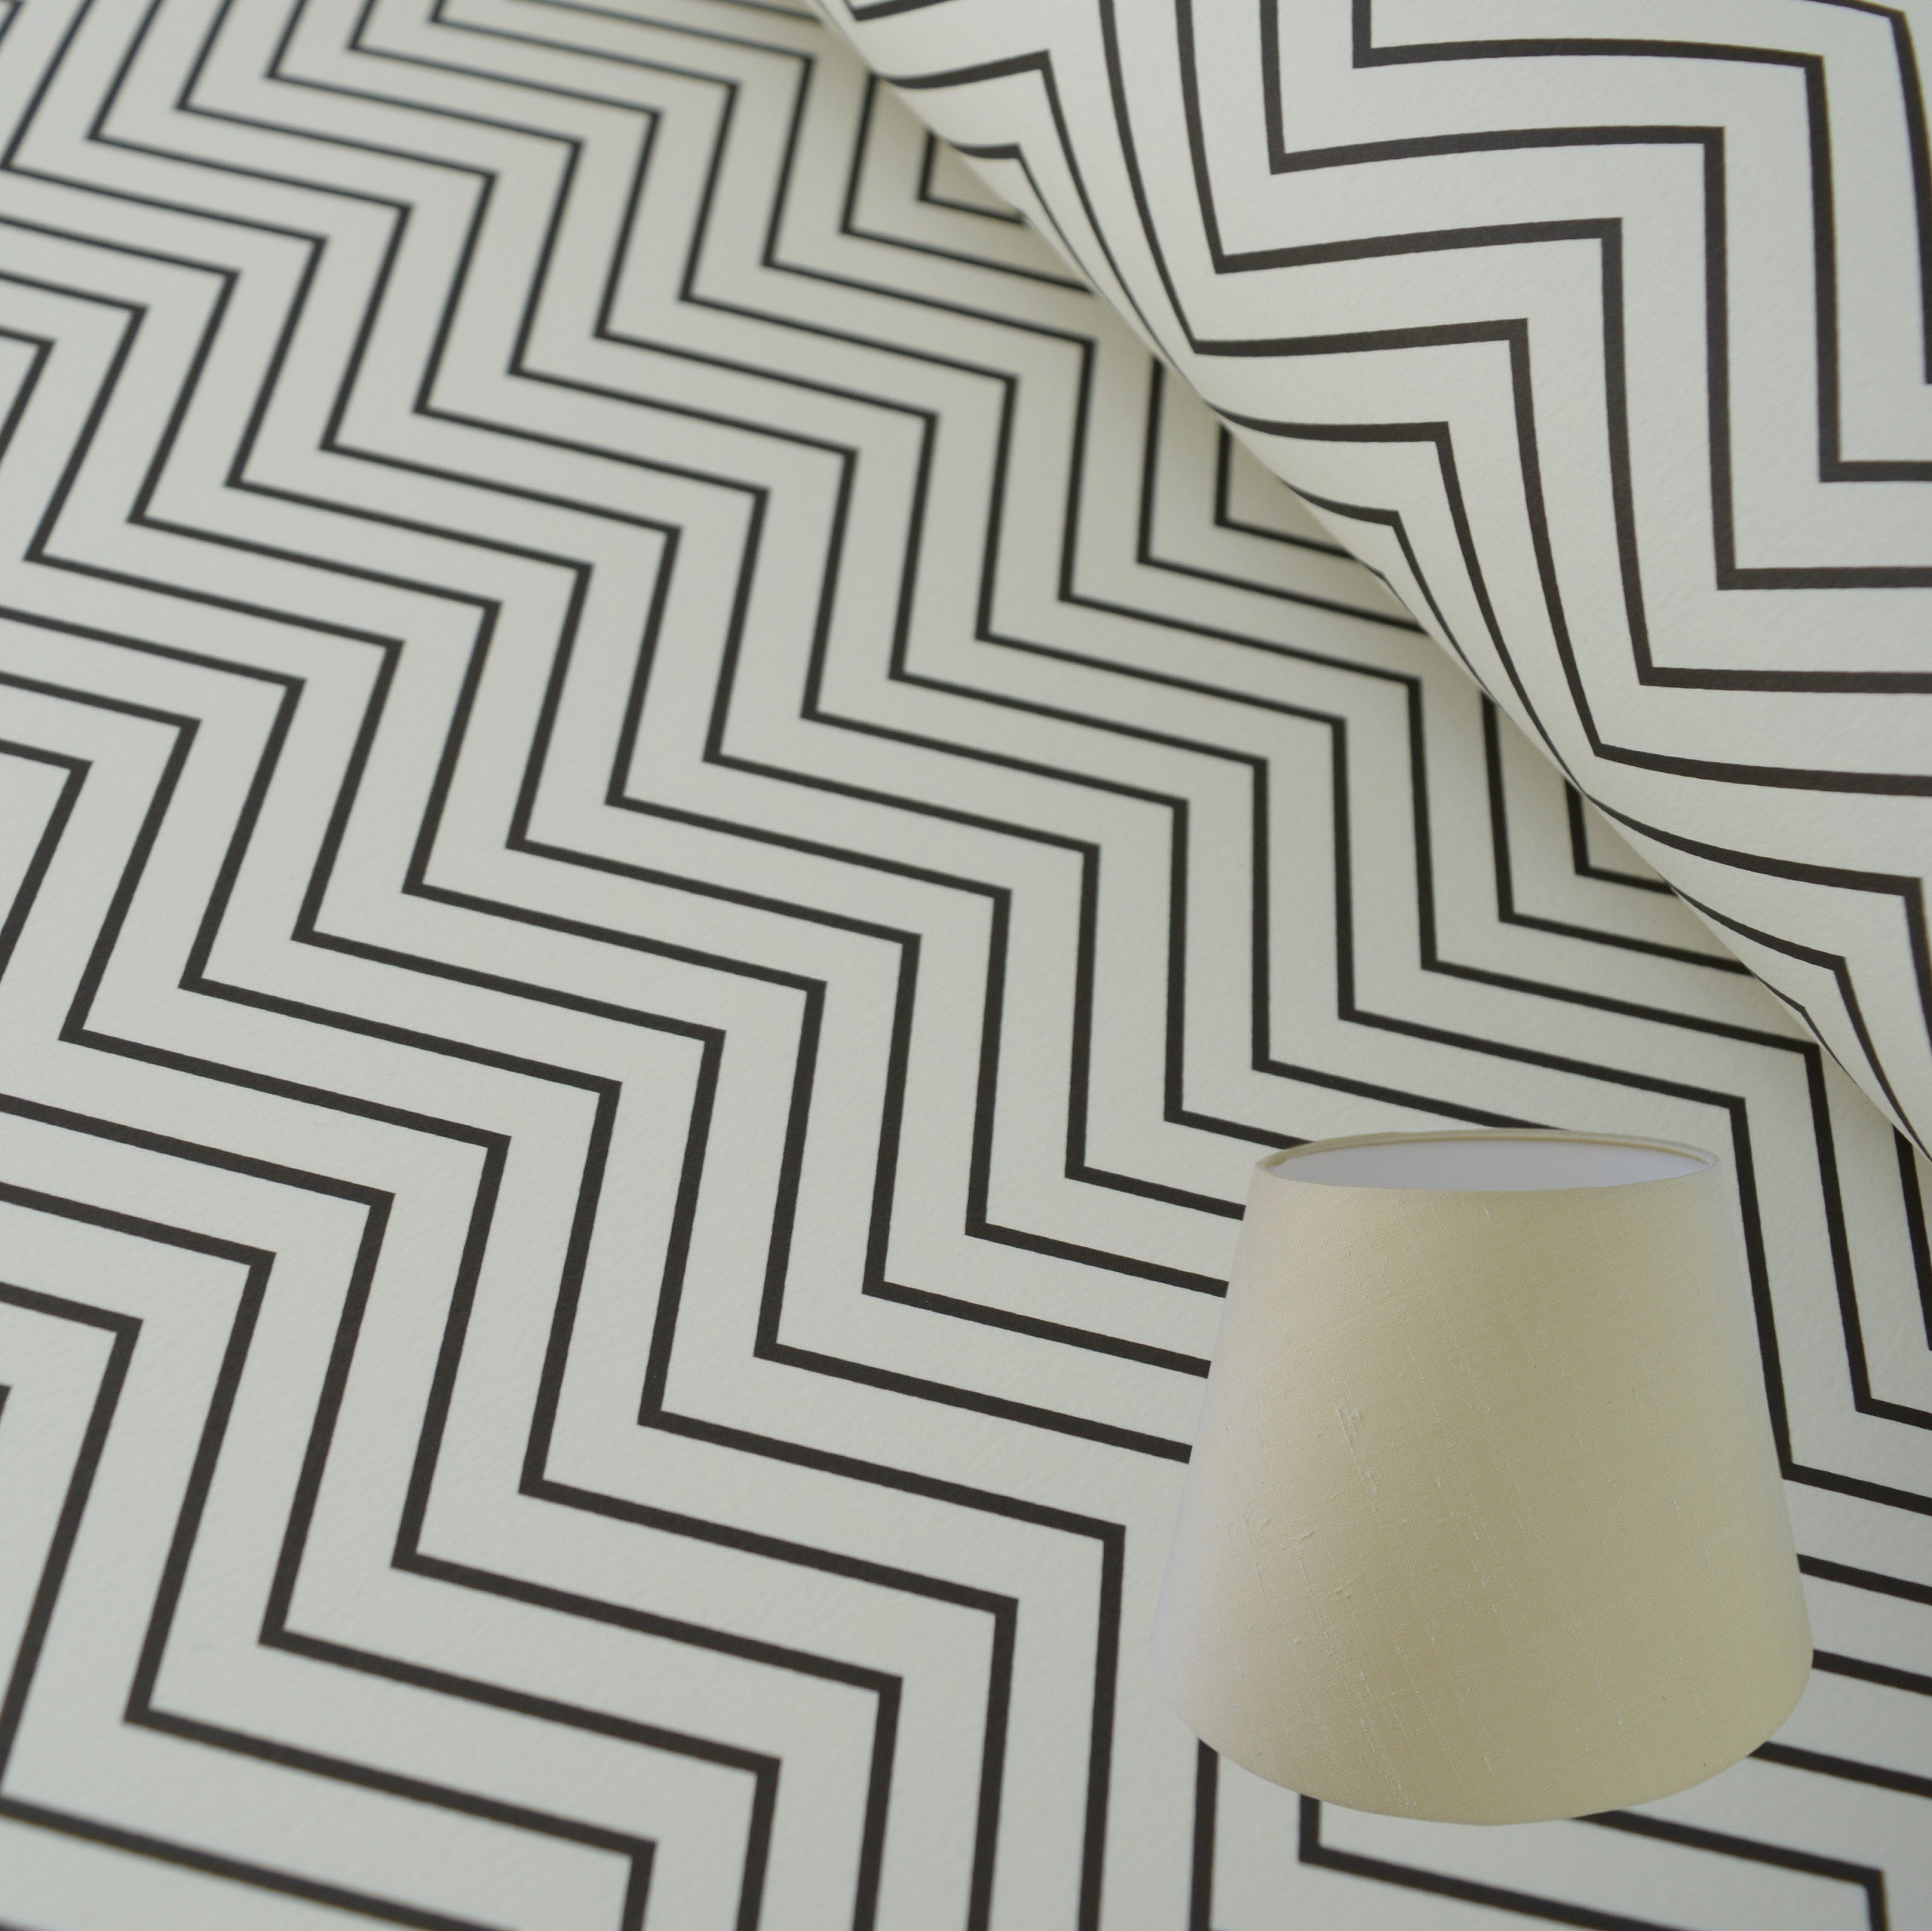 Munro and Kerr zig zag black and white monochrome paper for an empire lampshade